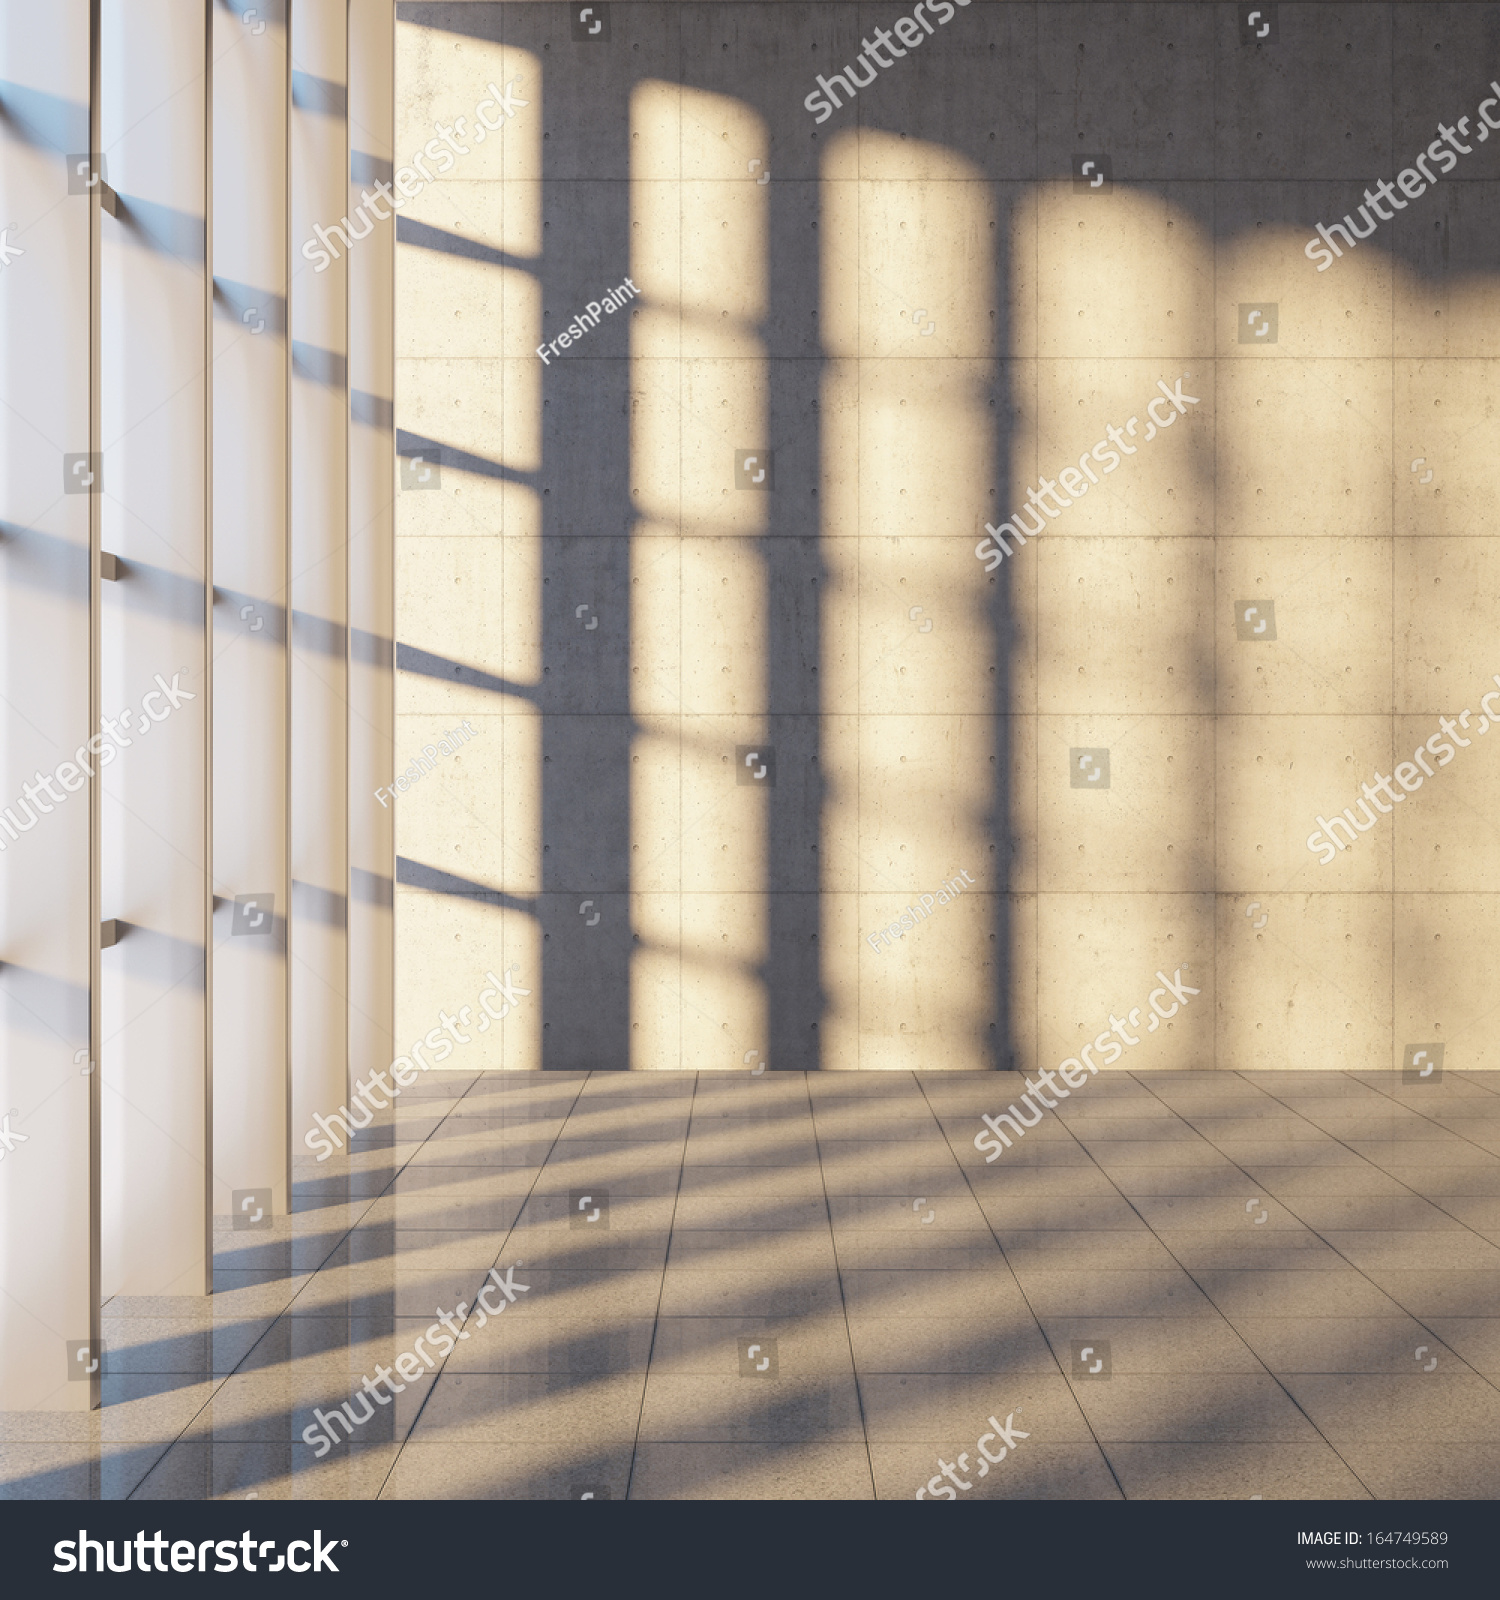 Architectural design modern concrete hall panoramic stock for Window design cement